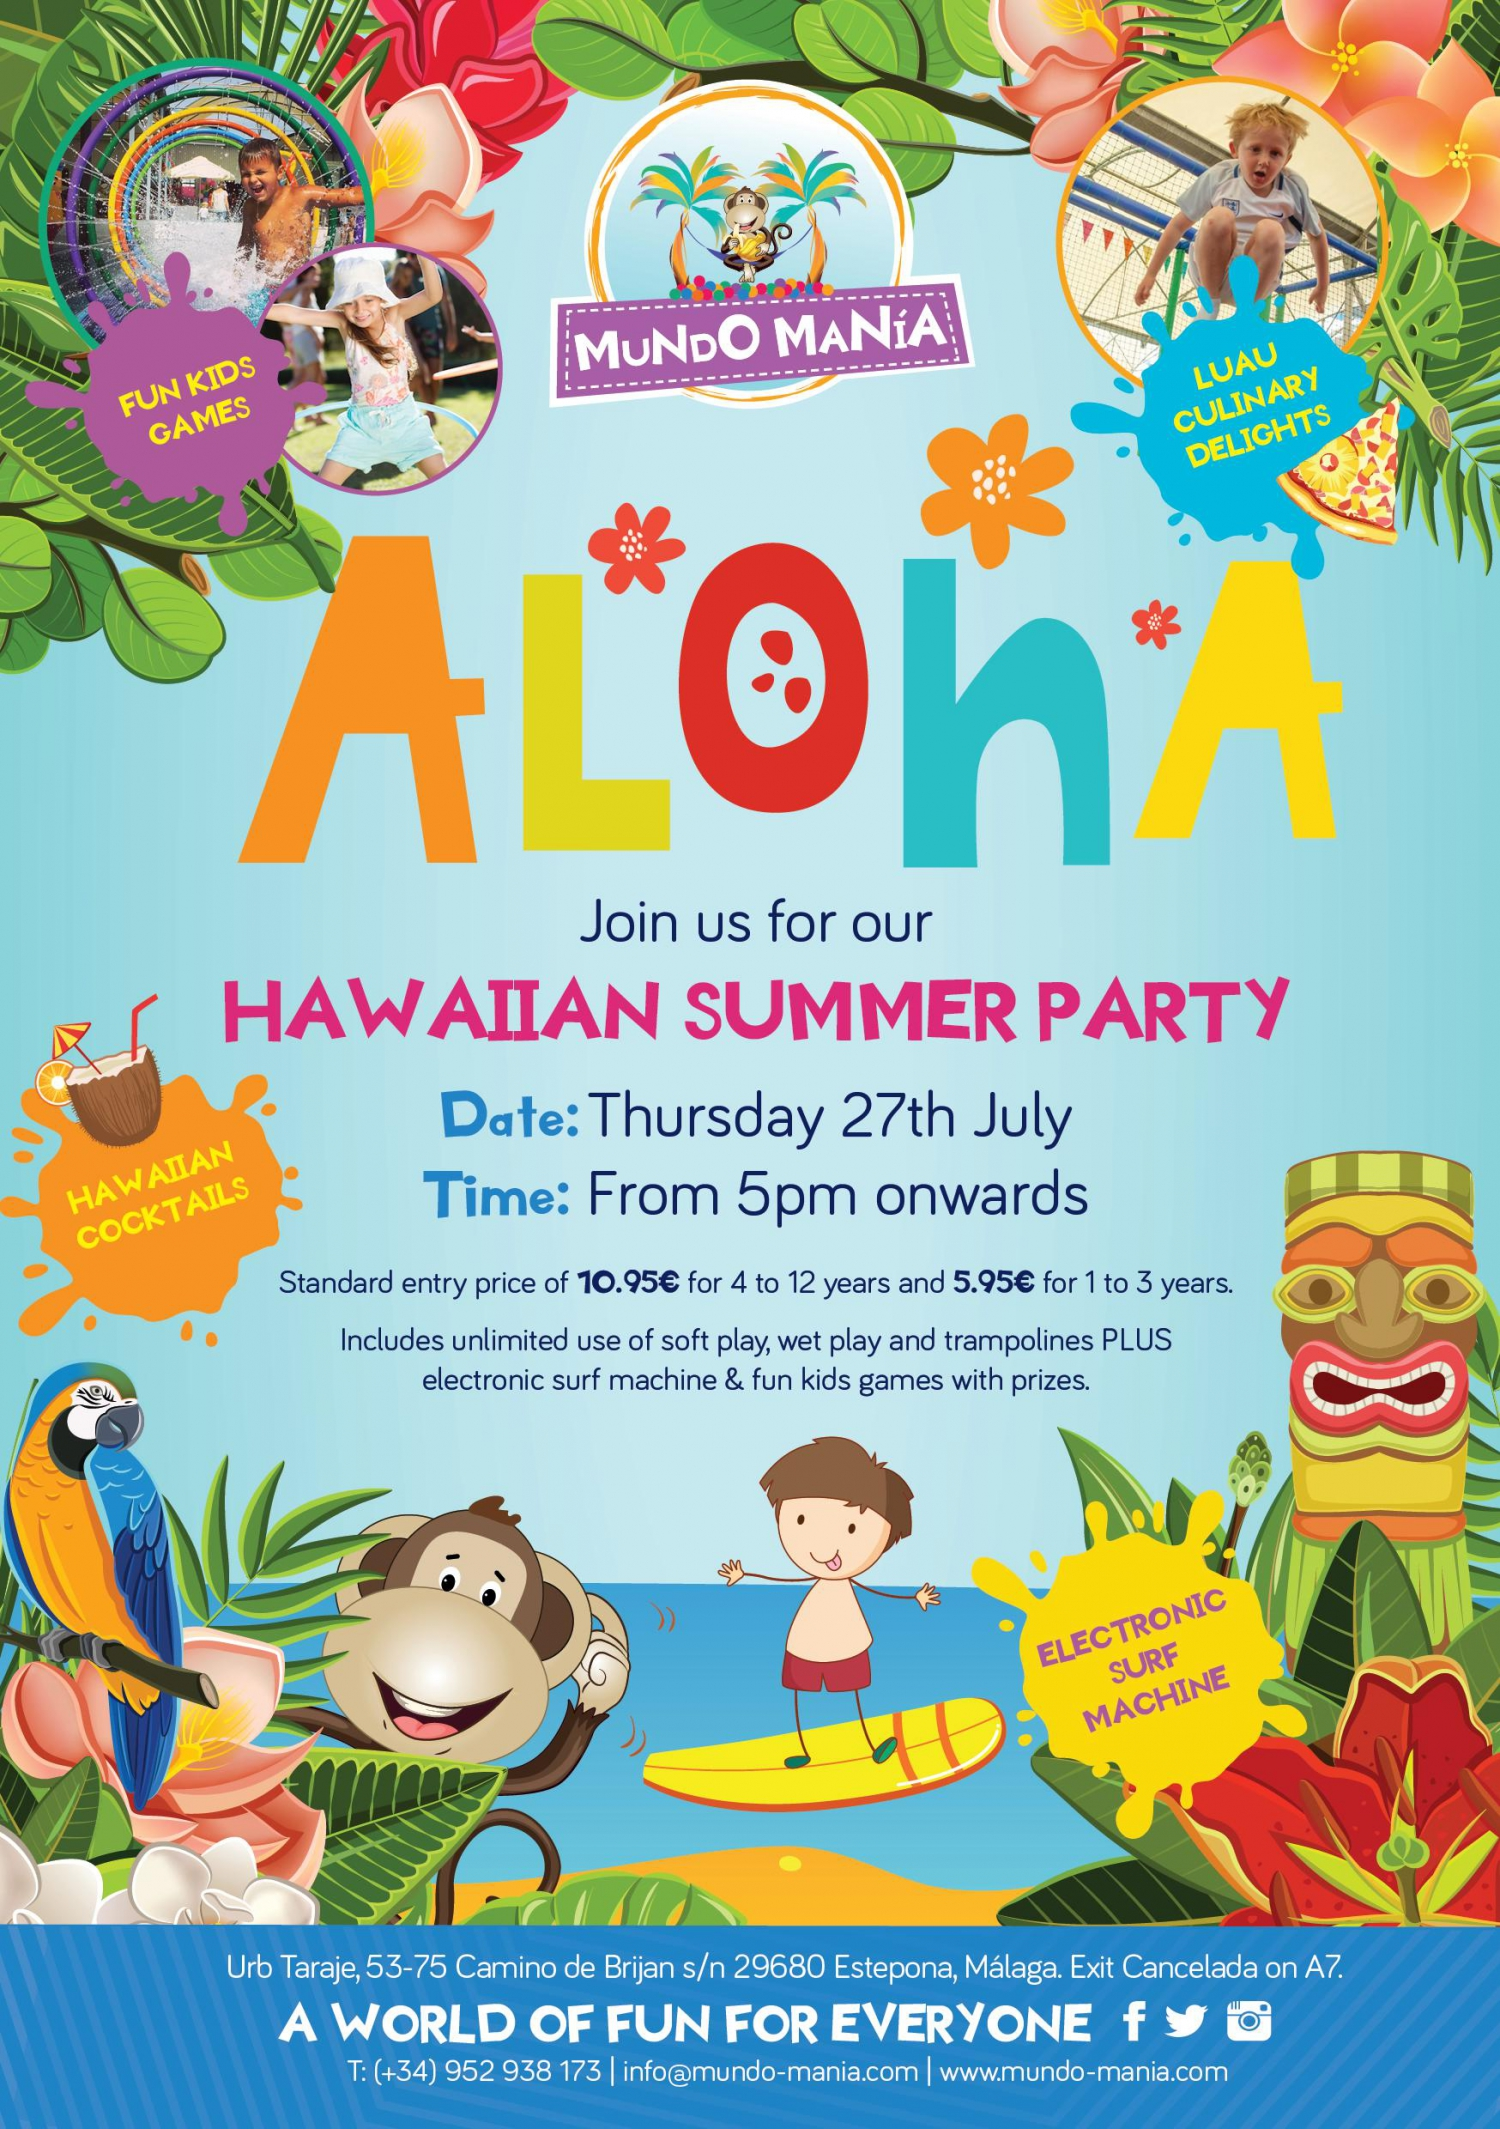 Mundo Mania Hawaiian Summer Party